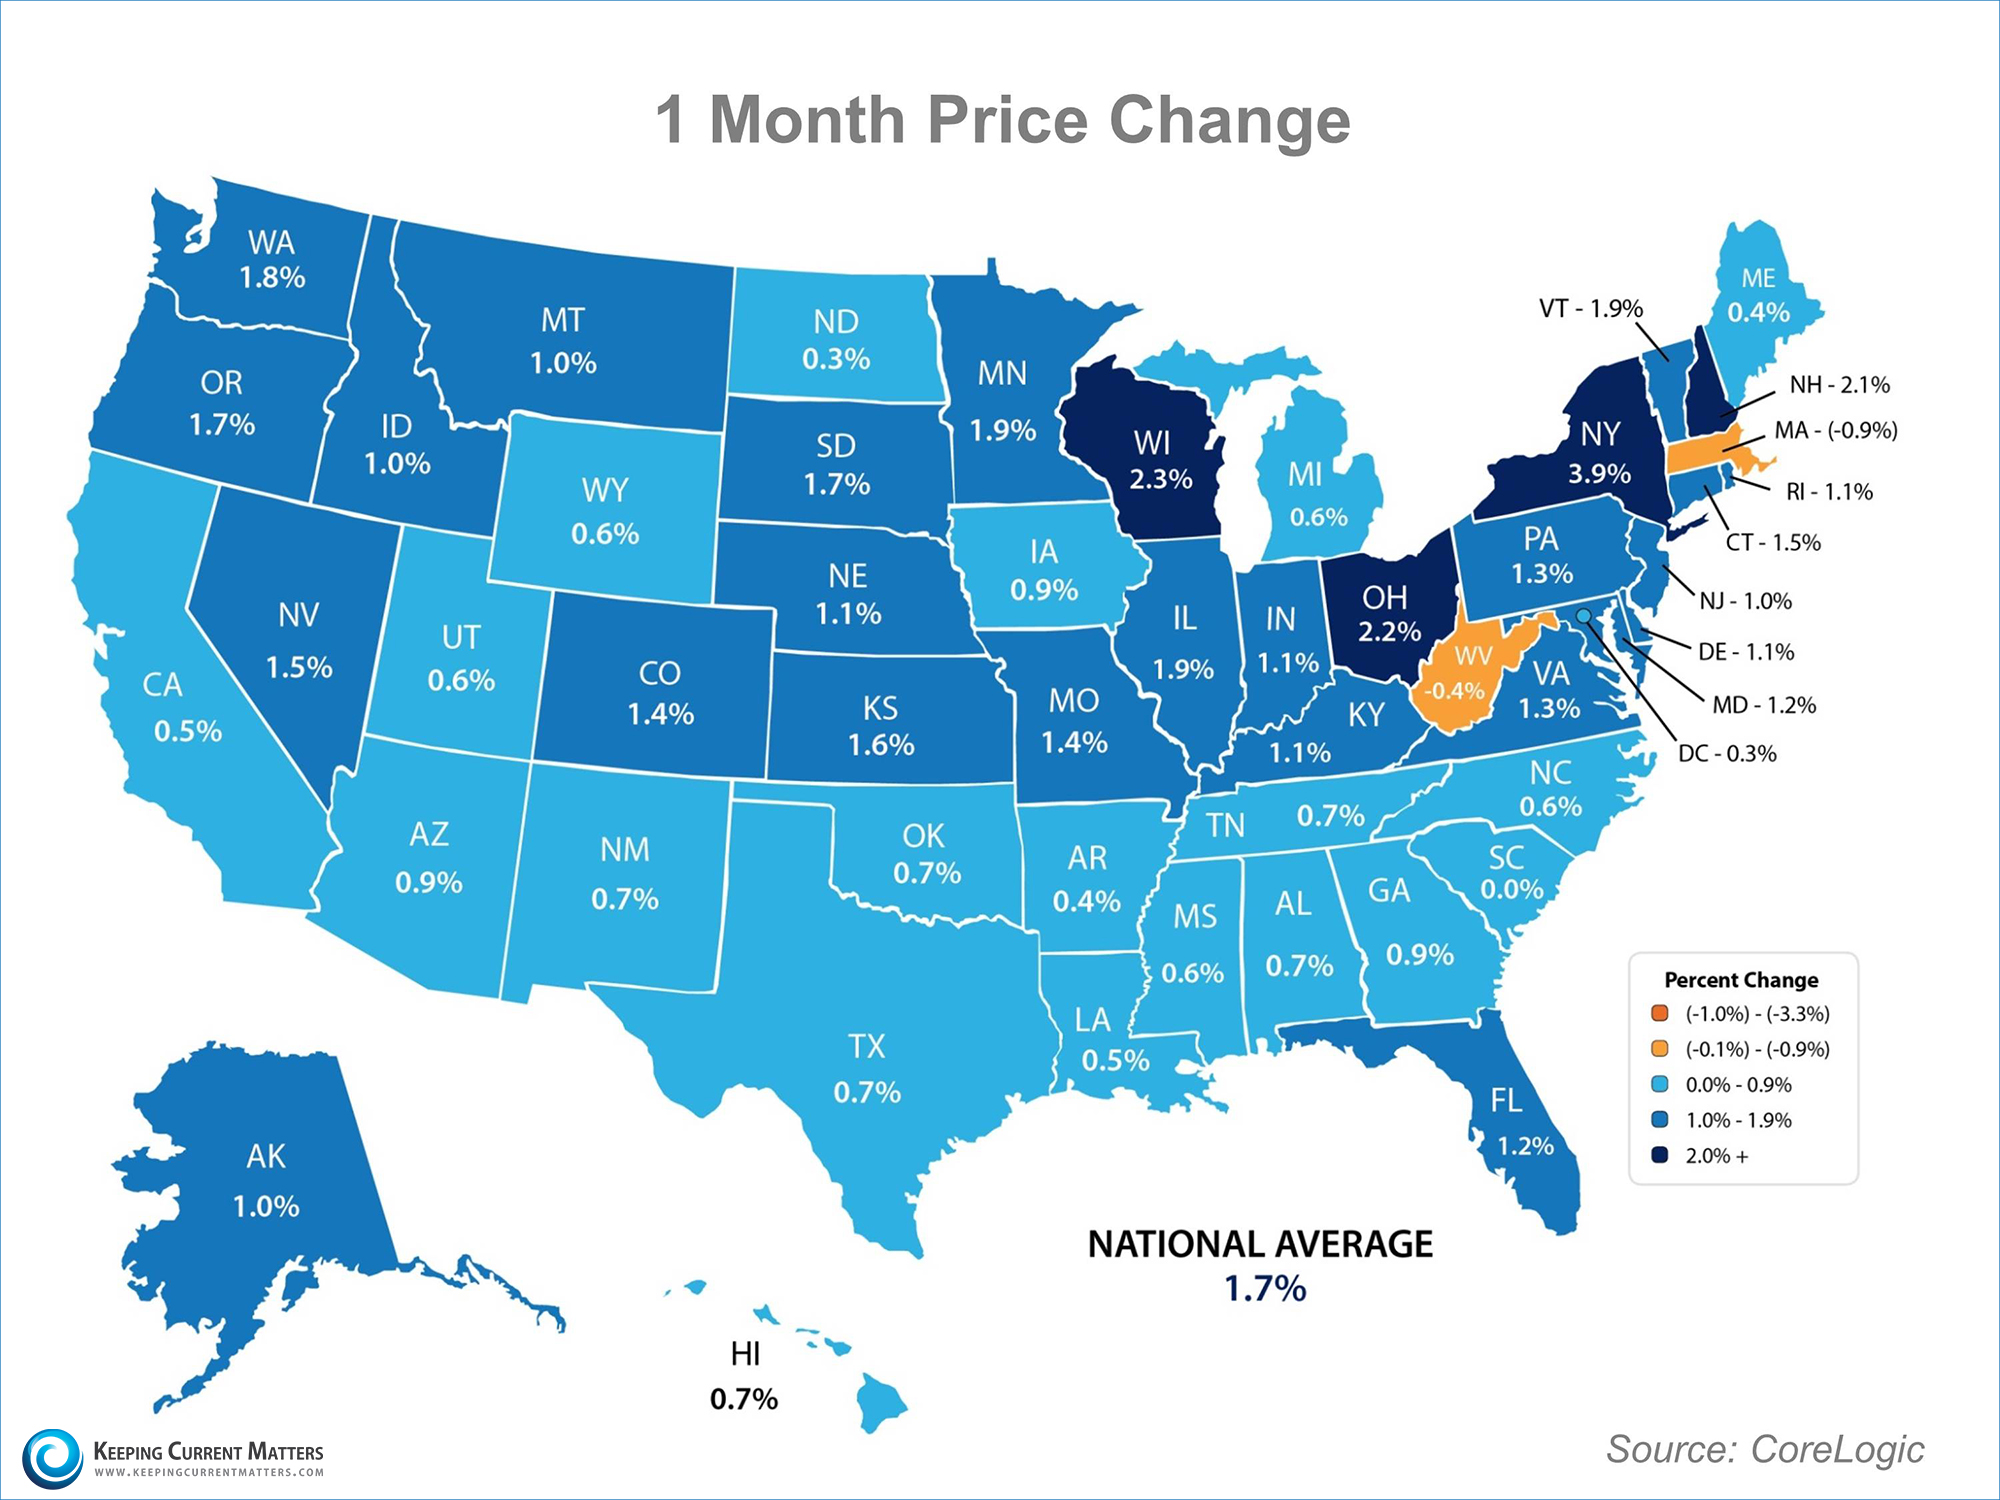 http://www.keepingcurrentmatters.com/wp-content/uploads/2015/09/1-month-price-change-KCM.jpg